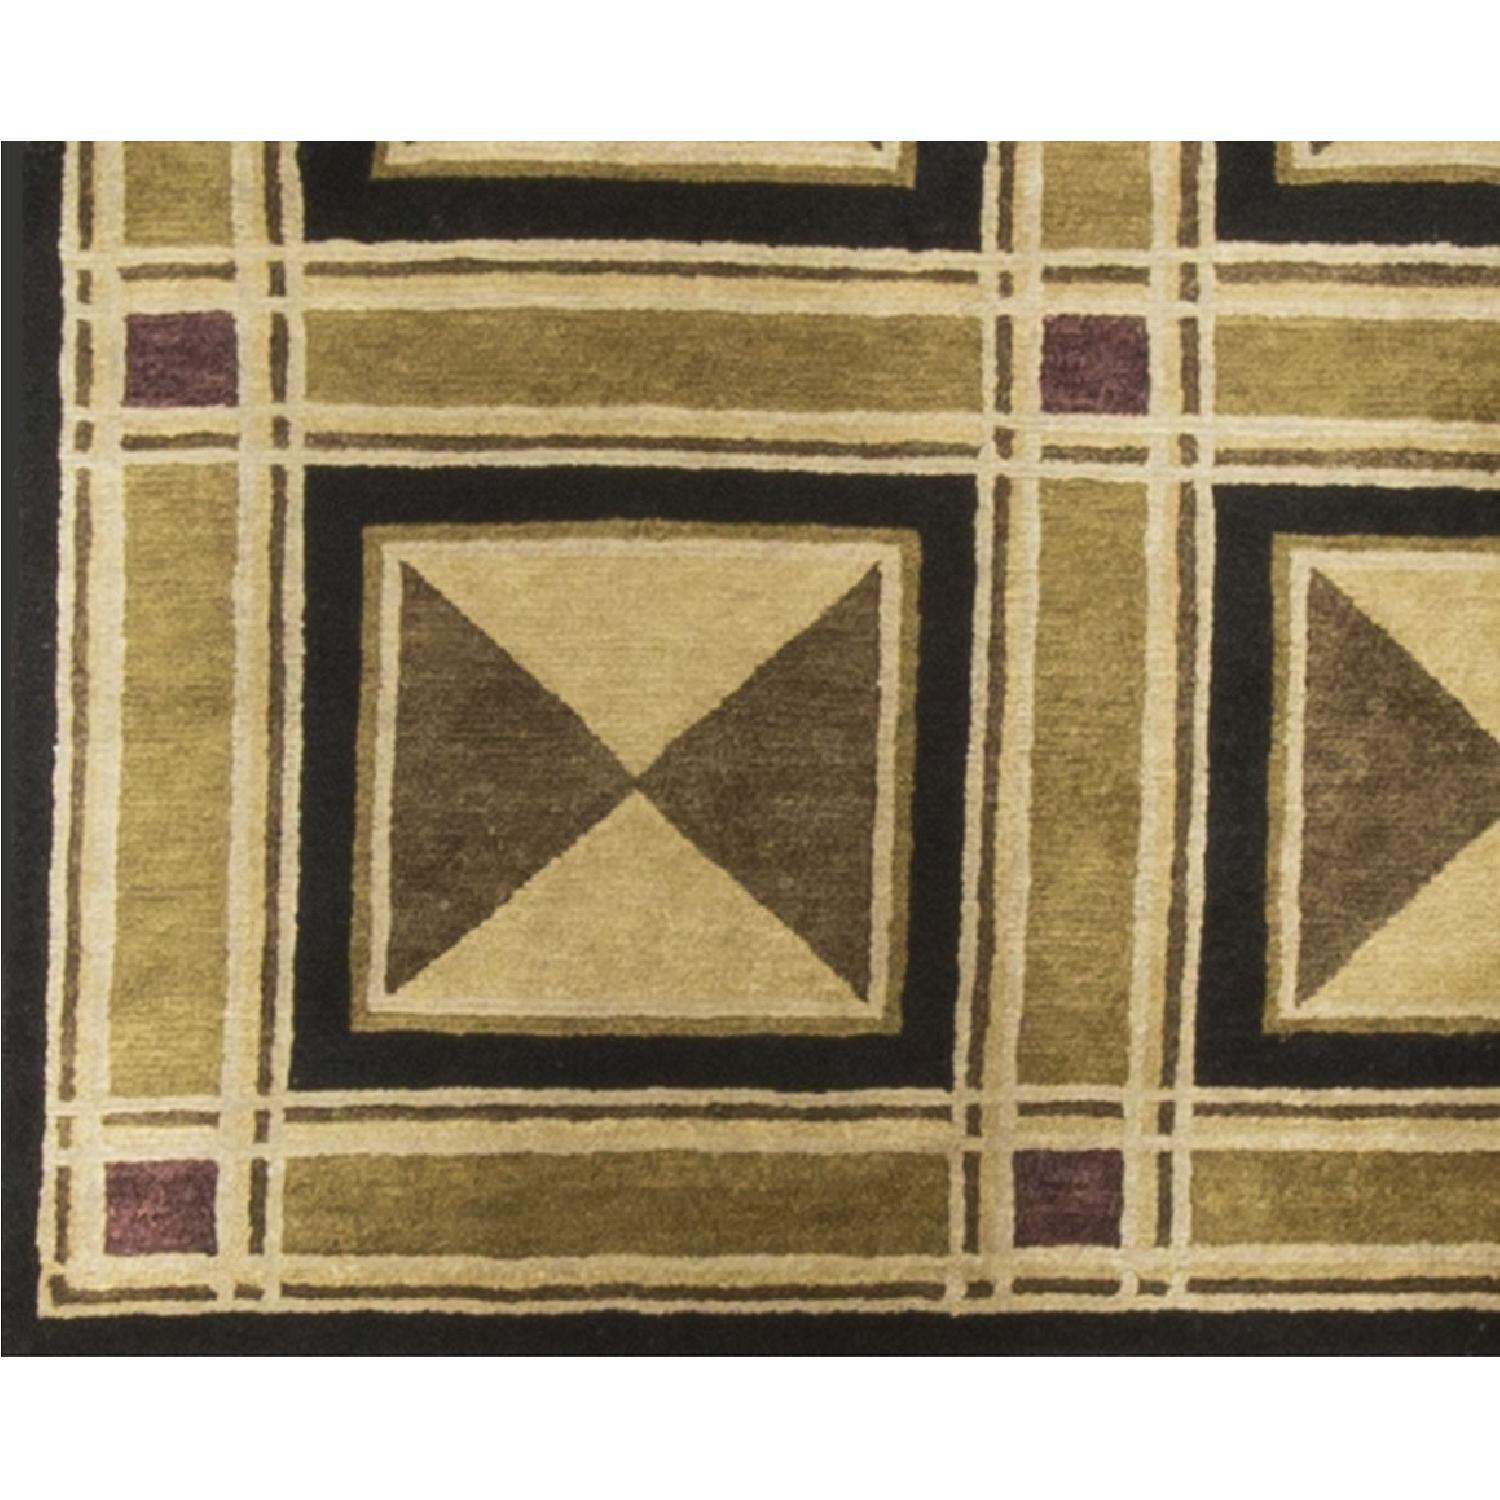 Modern Contemporary Hand Knotted Wool Rug in Black/Beige/Brown - image-3